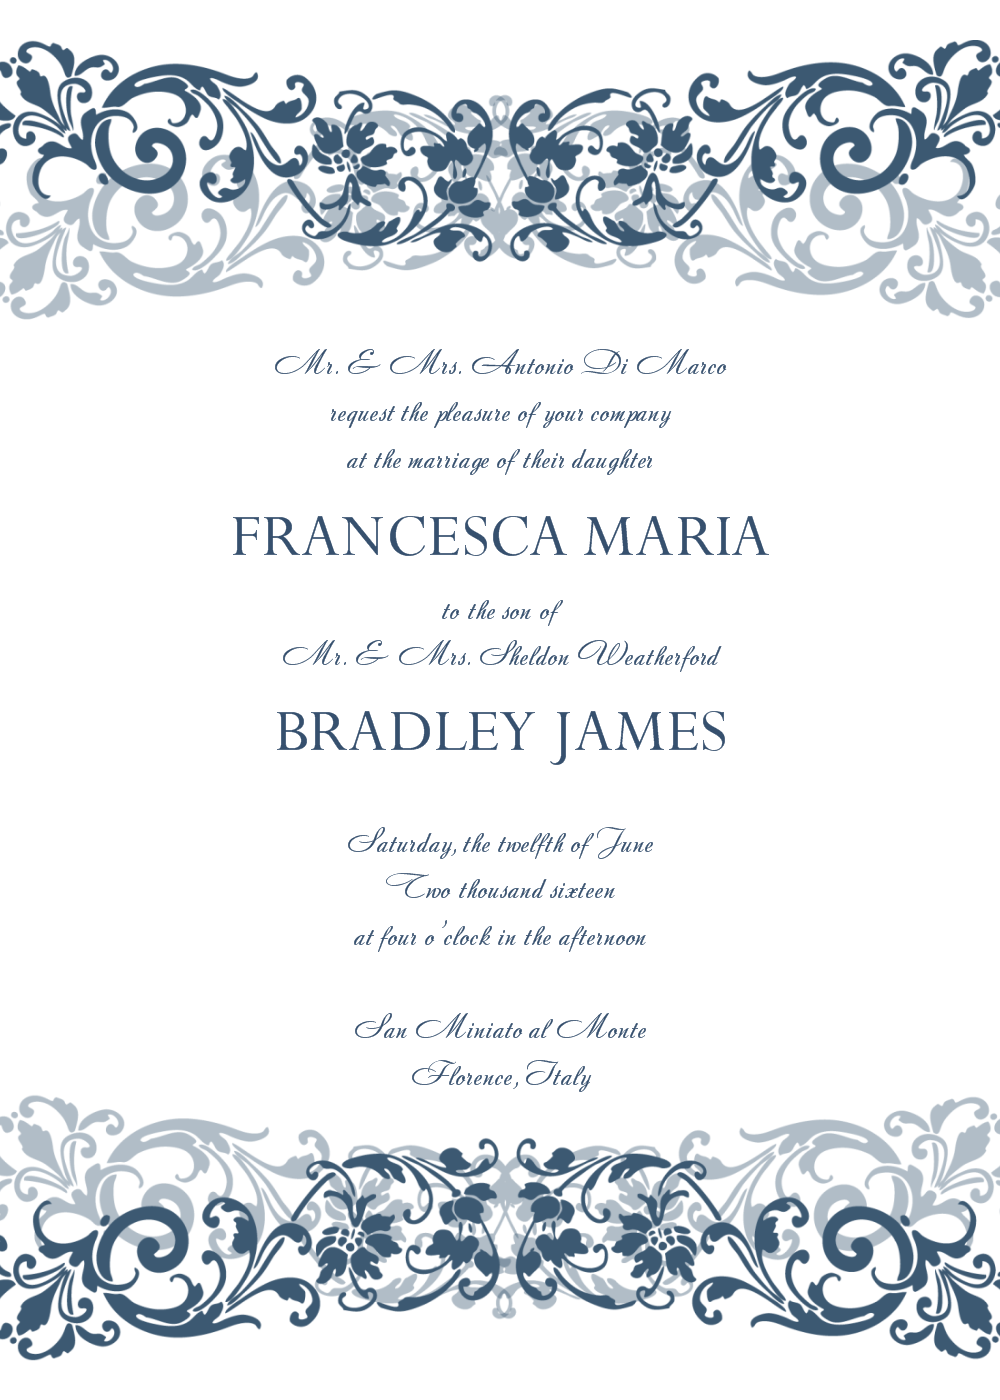 Graduation Invitation Templates Word Best Party Ideas In